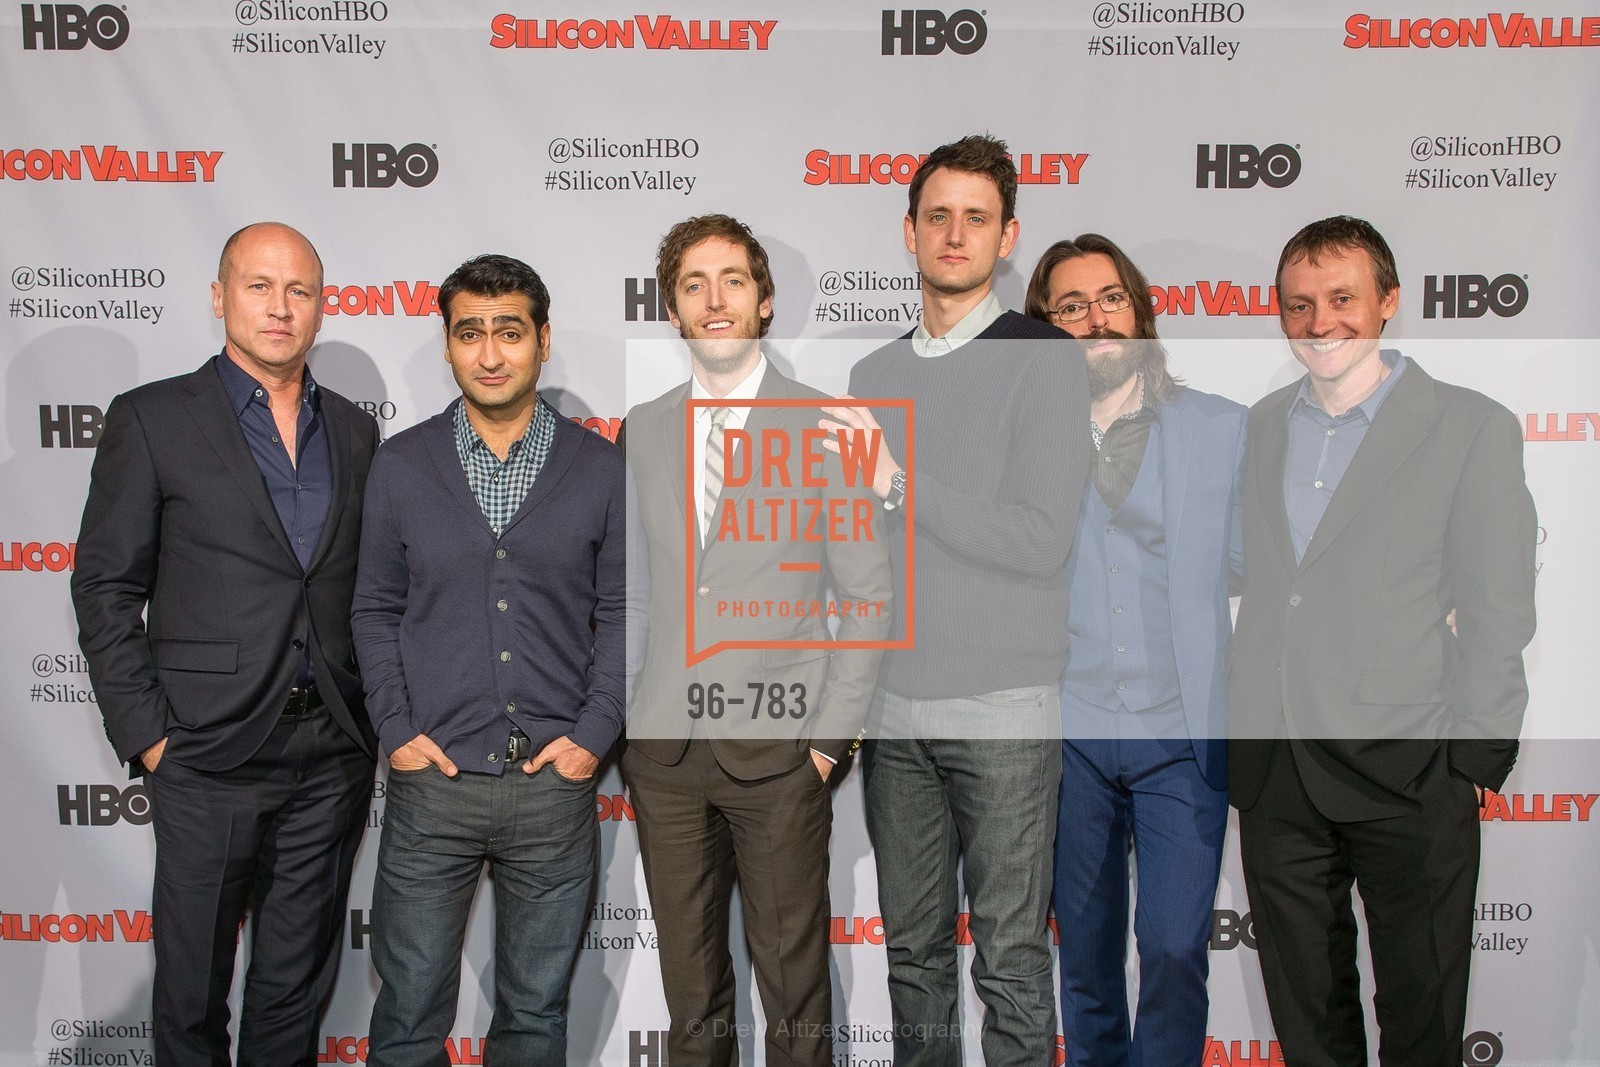 Mike Judge, Kumail Nanjiani, Thomas Middleditch, Zach Woods, Martin Starr, Alec Berg, HBO'S SILICON VALLEY San Francisco Screening, US, April 8th, 2015,Drew Altizer, Drew Altizer Photography, full-service agency, private events, San Francisco photographer, photographer california